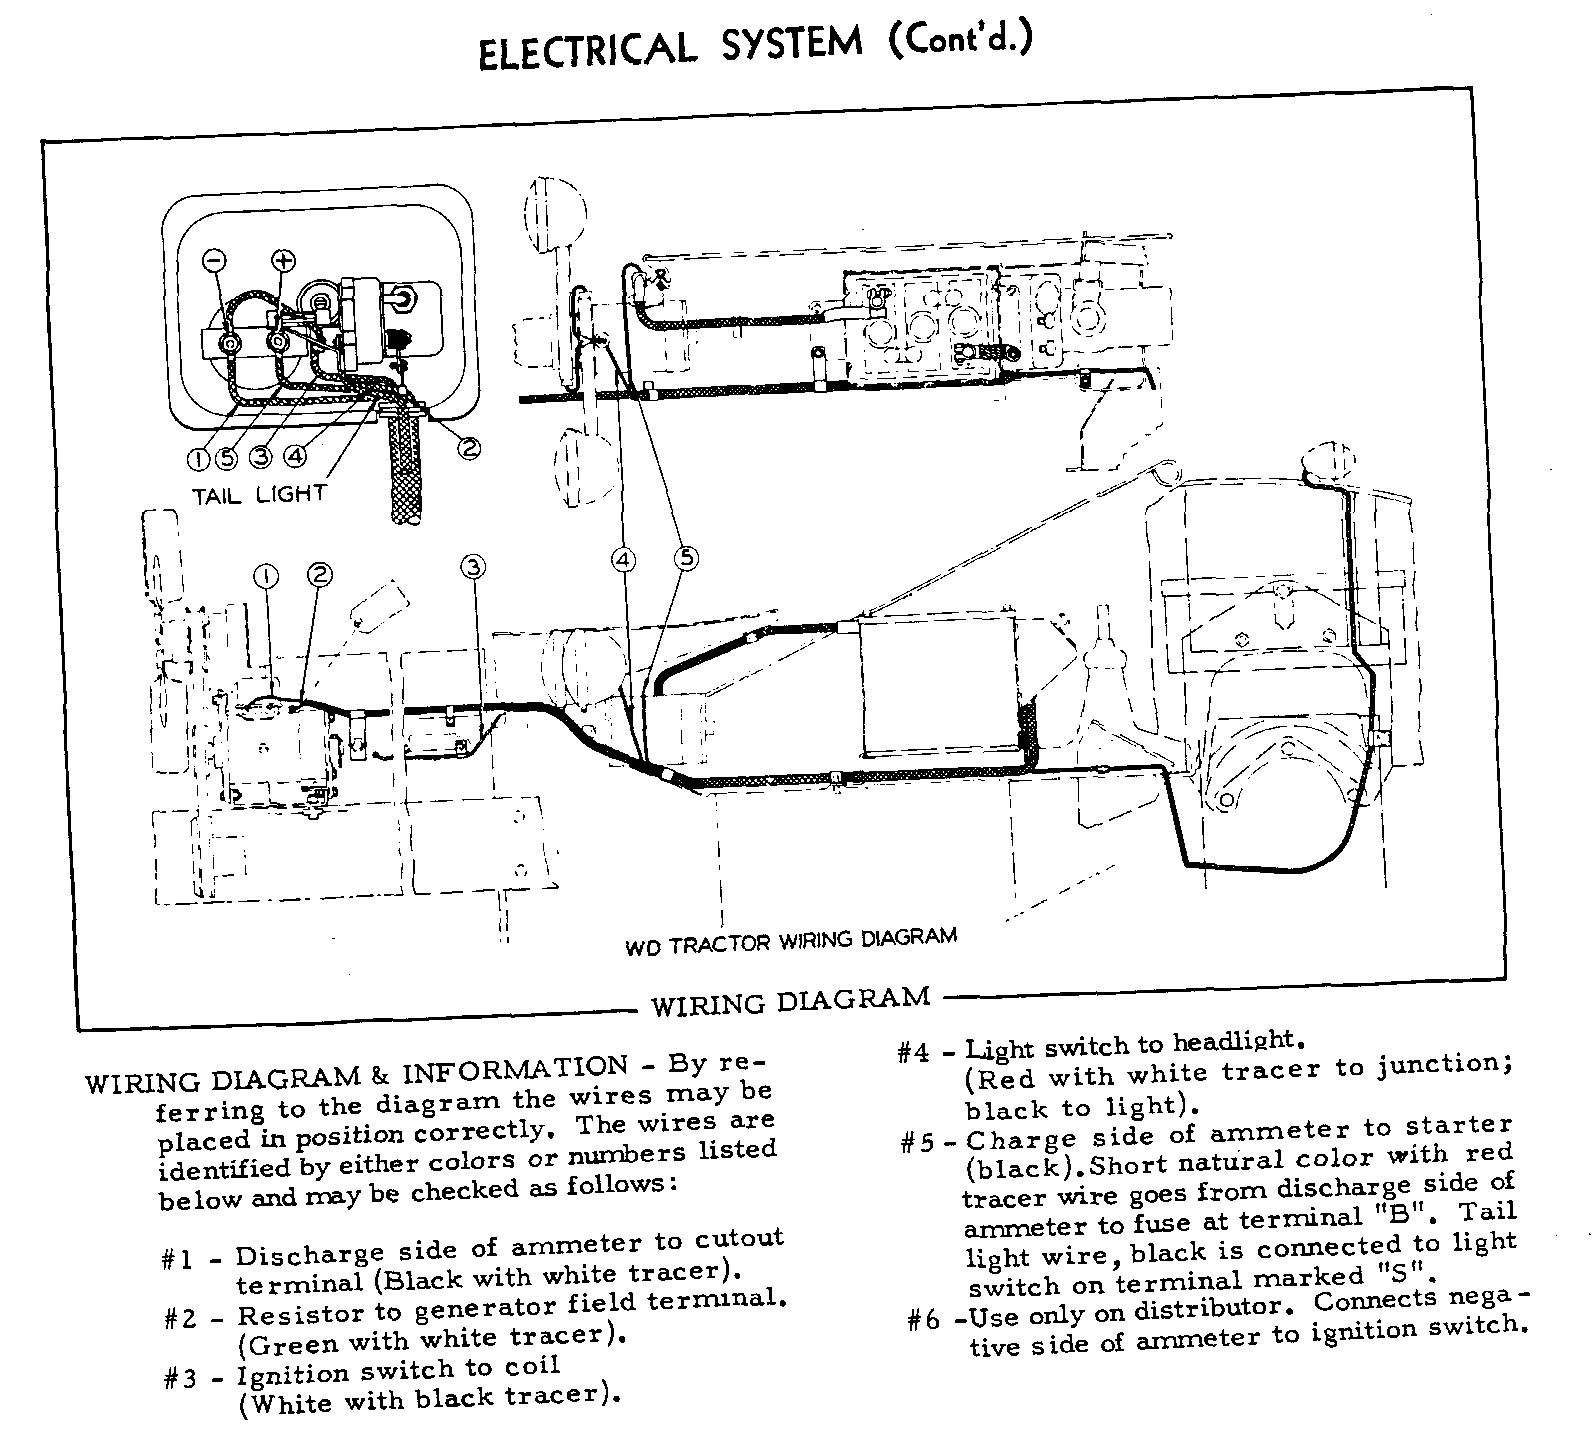 Universal Ignition Switch Wiring Diagram Universal Ignition Switch Wiring Diagram Elegant Engine Wiring Of Universal Ignition Switch Wiring Diagram